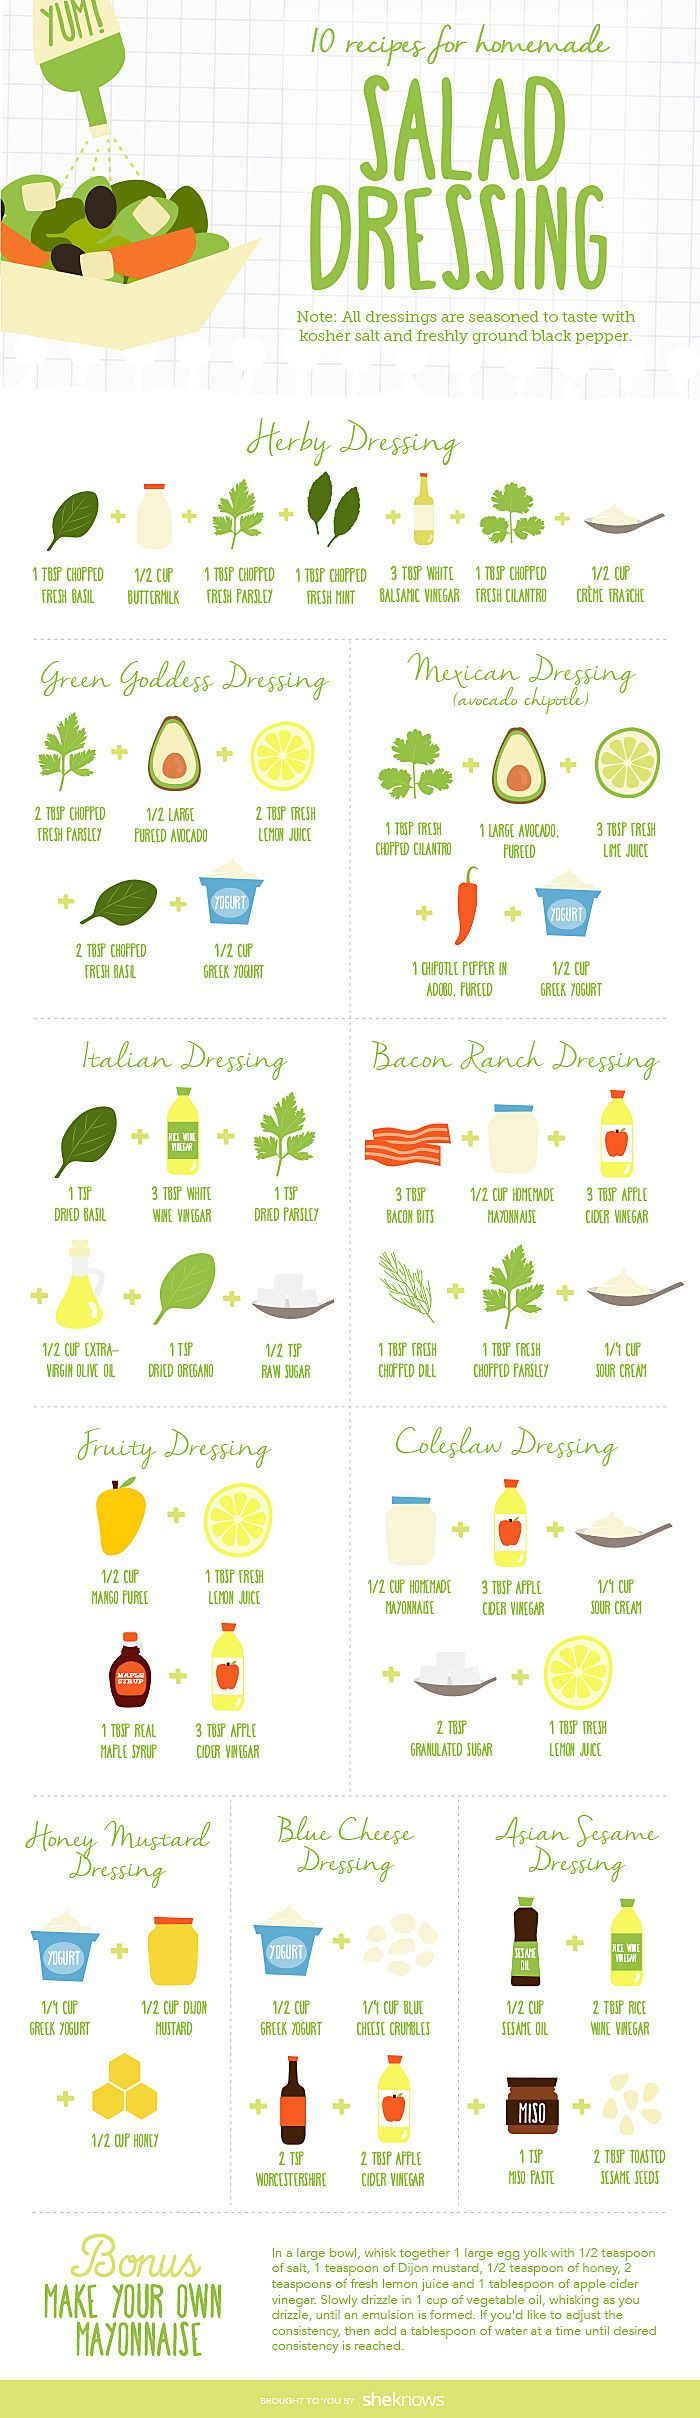 Homemade Salad Dressings: 10 Healthy Recipes Infographic